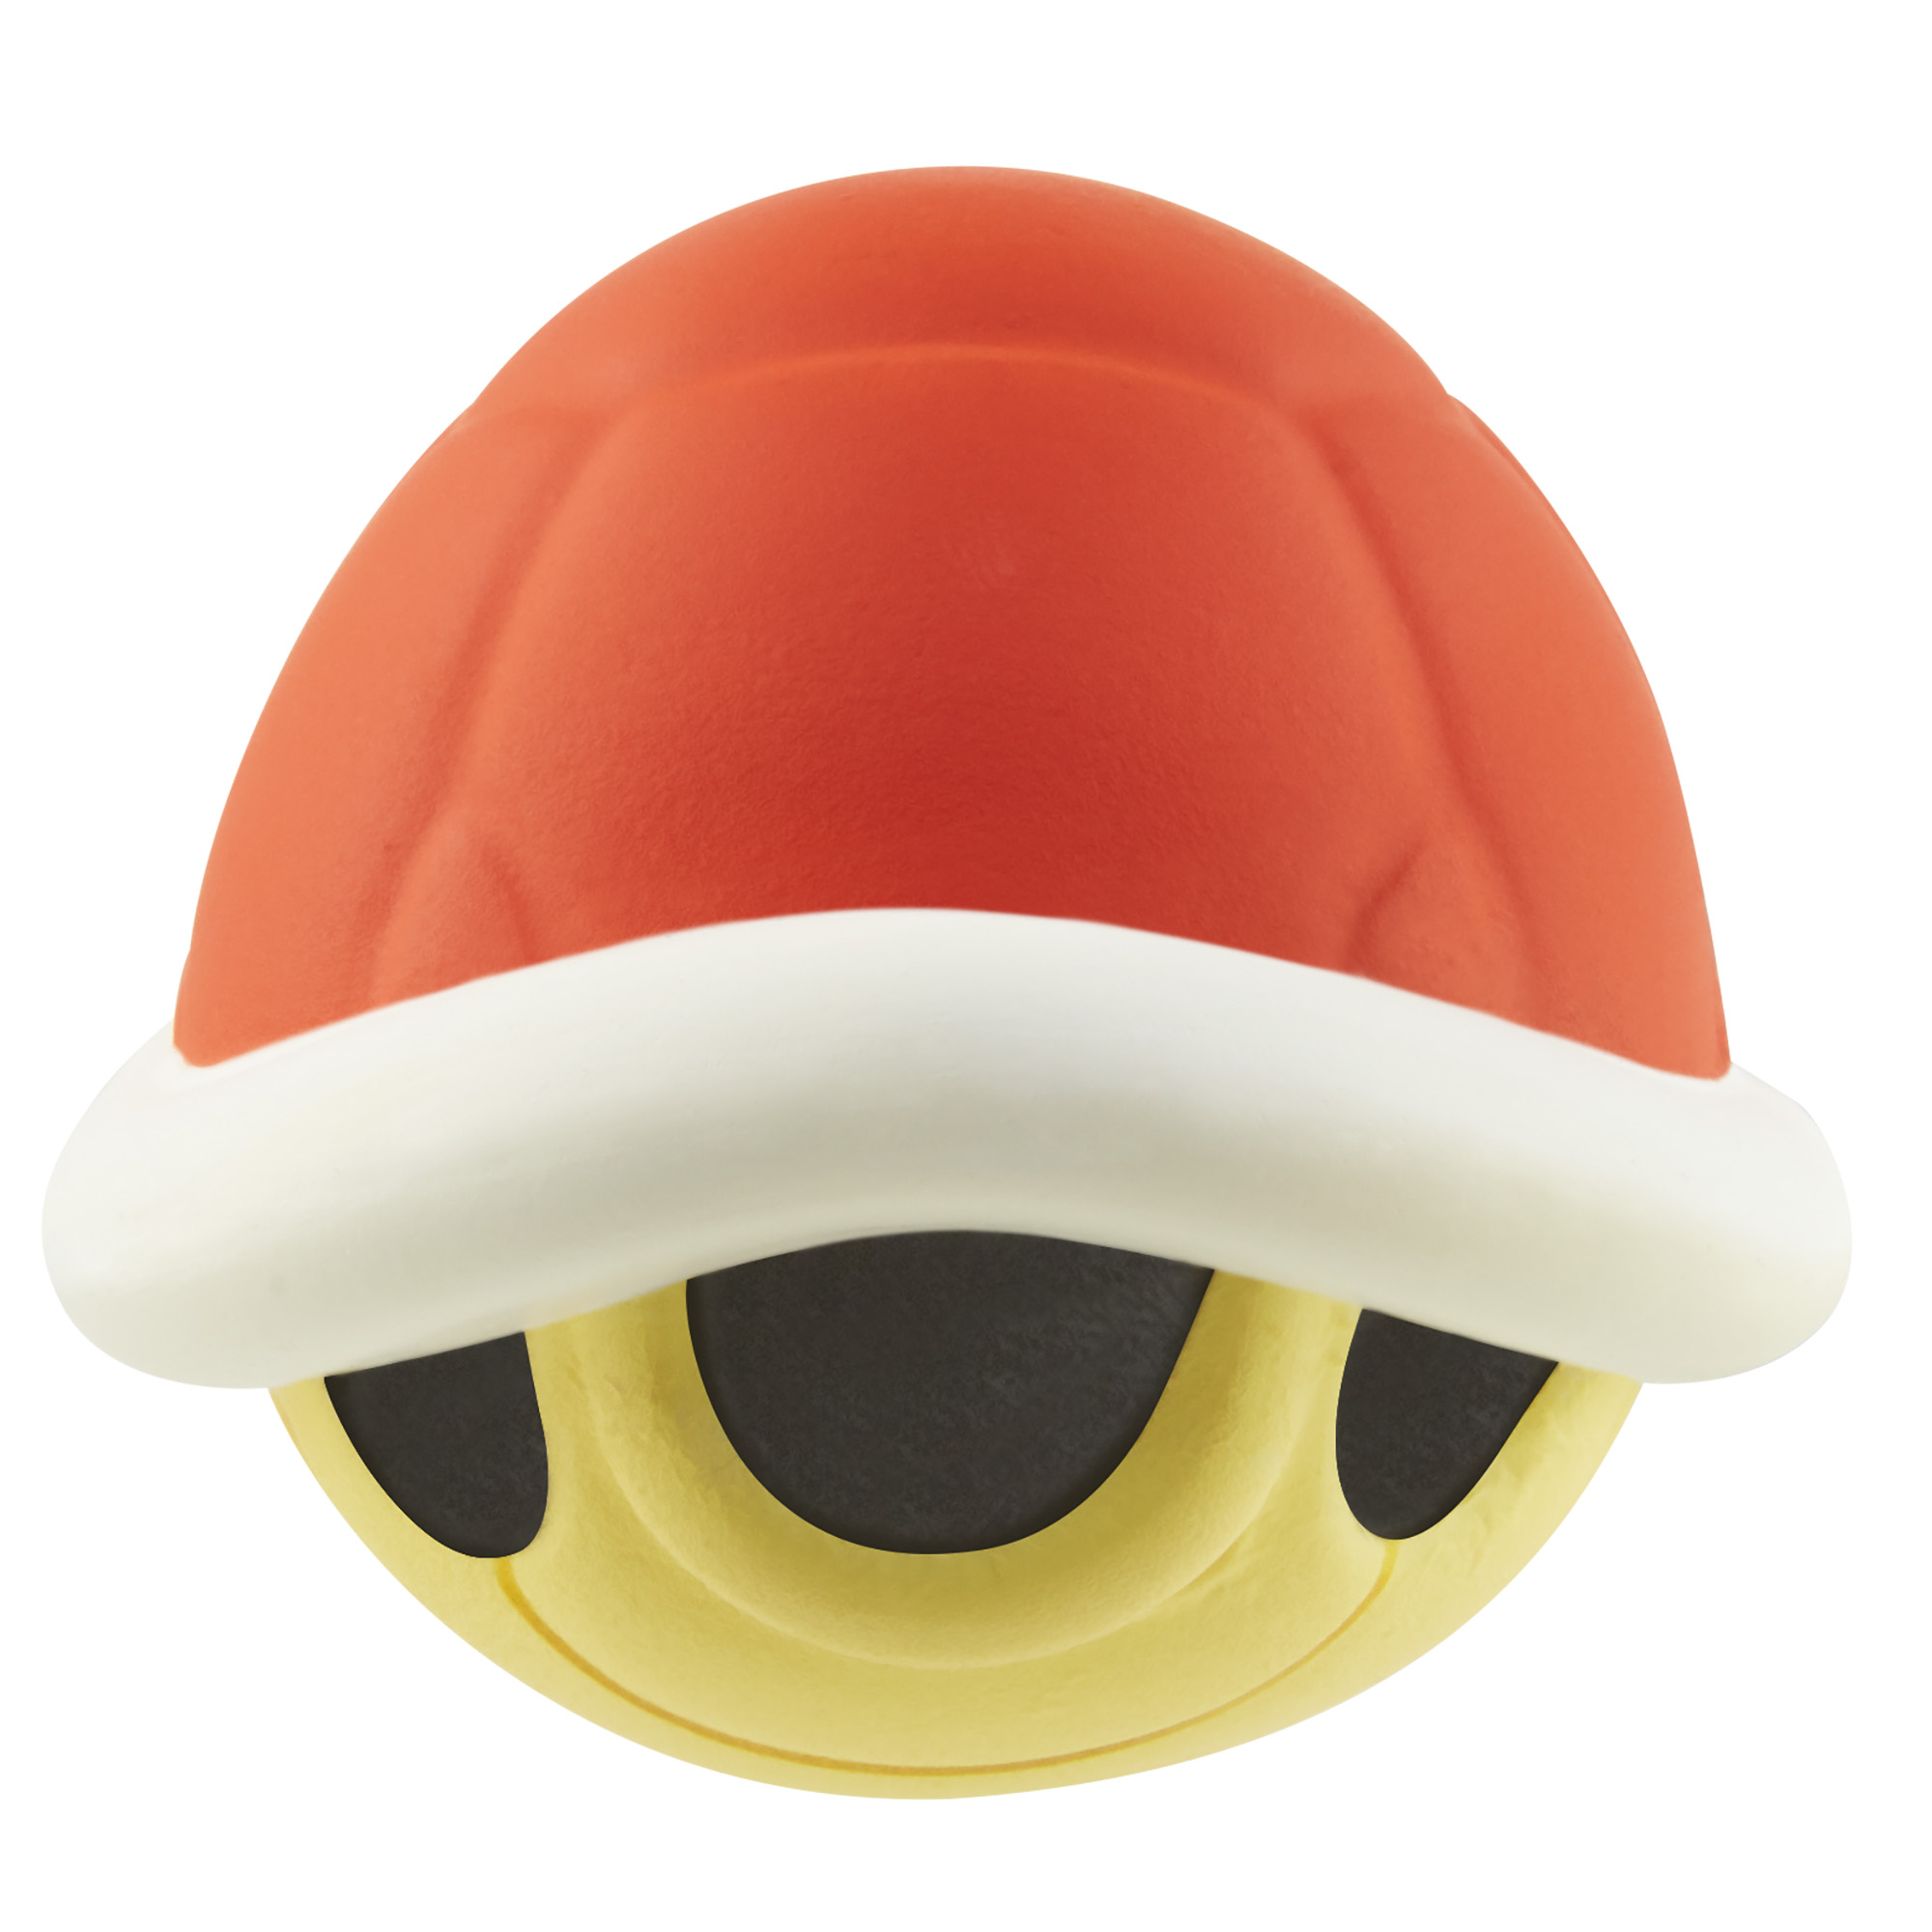 Super Mario Squish Dee-Lish Red Turtle Shell